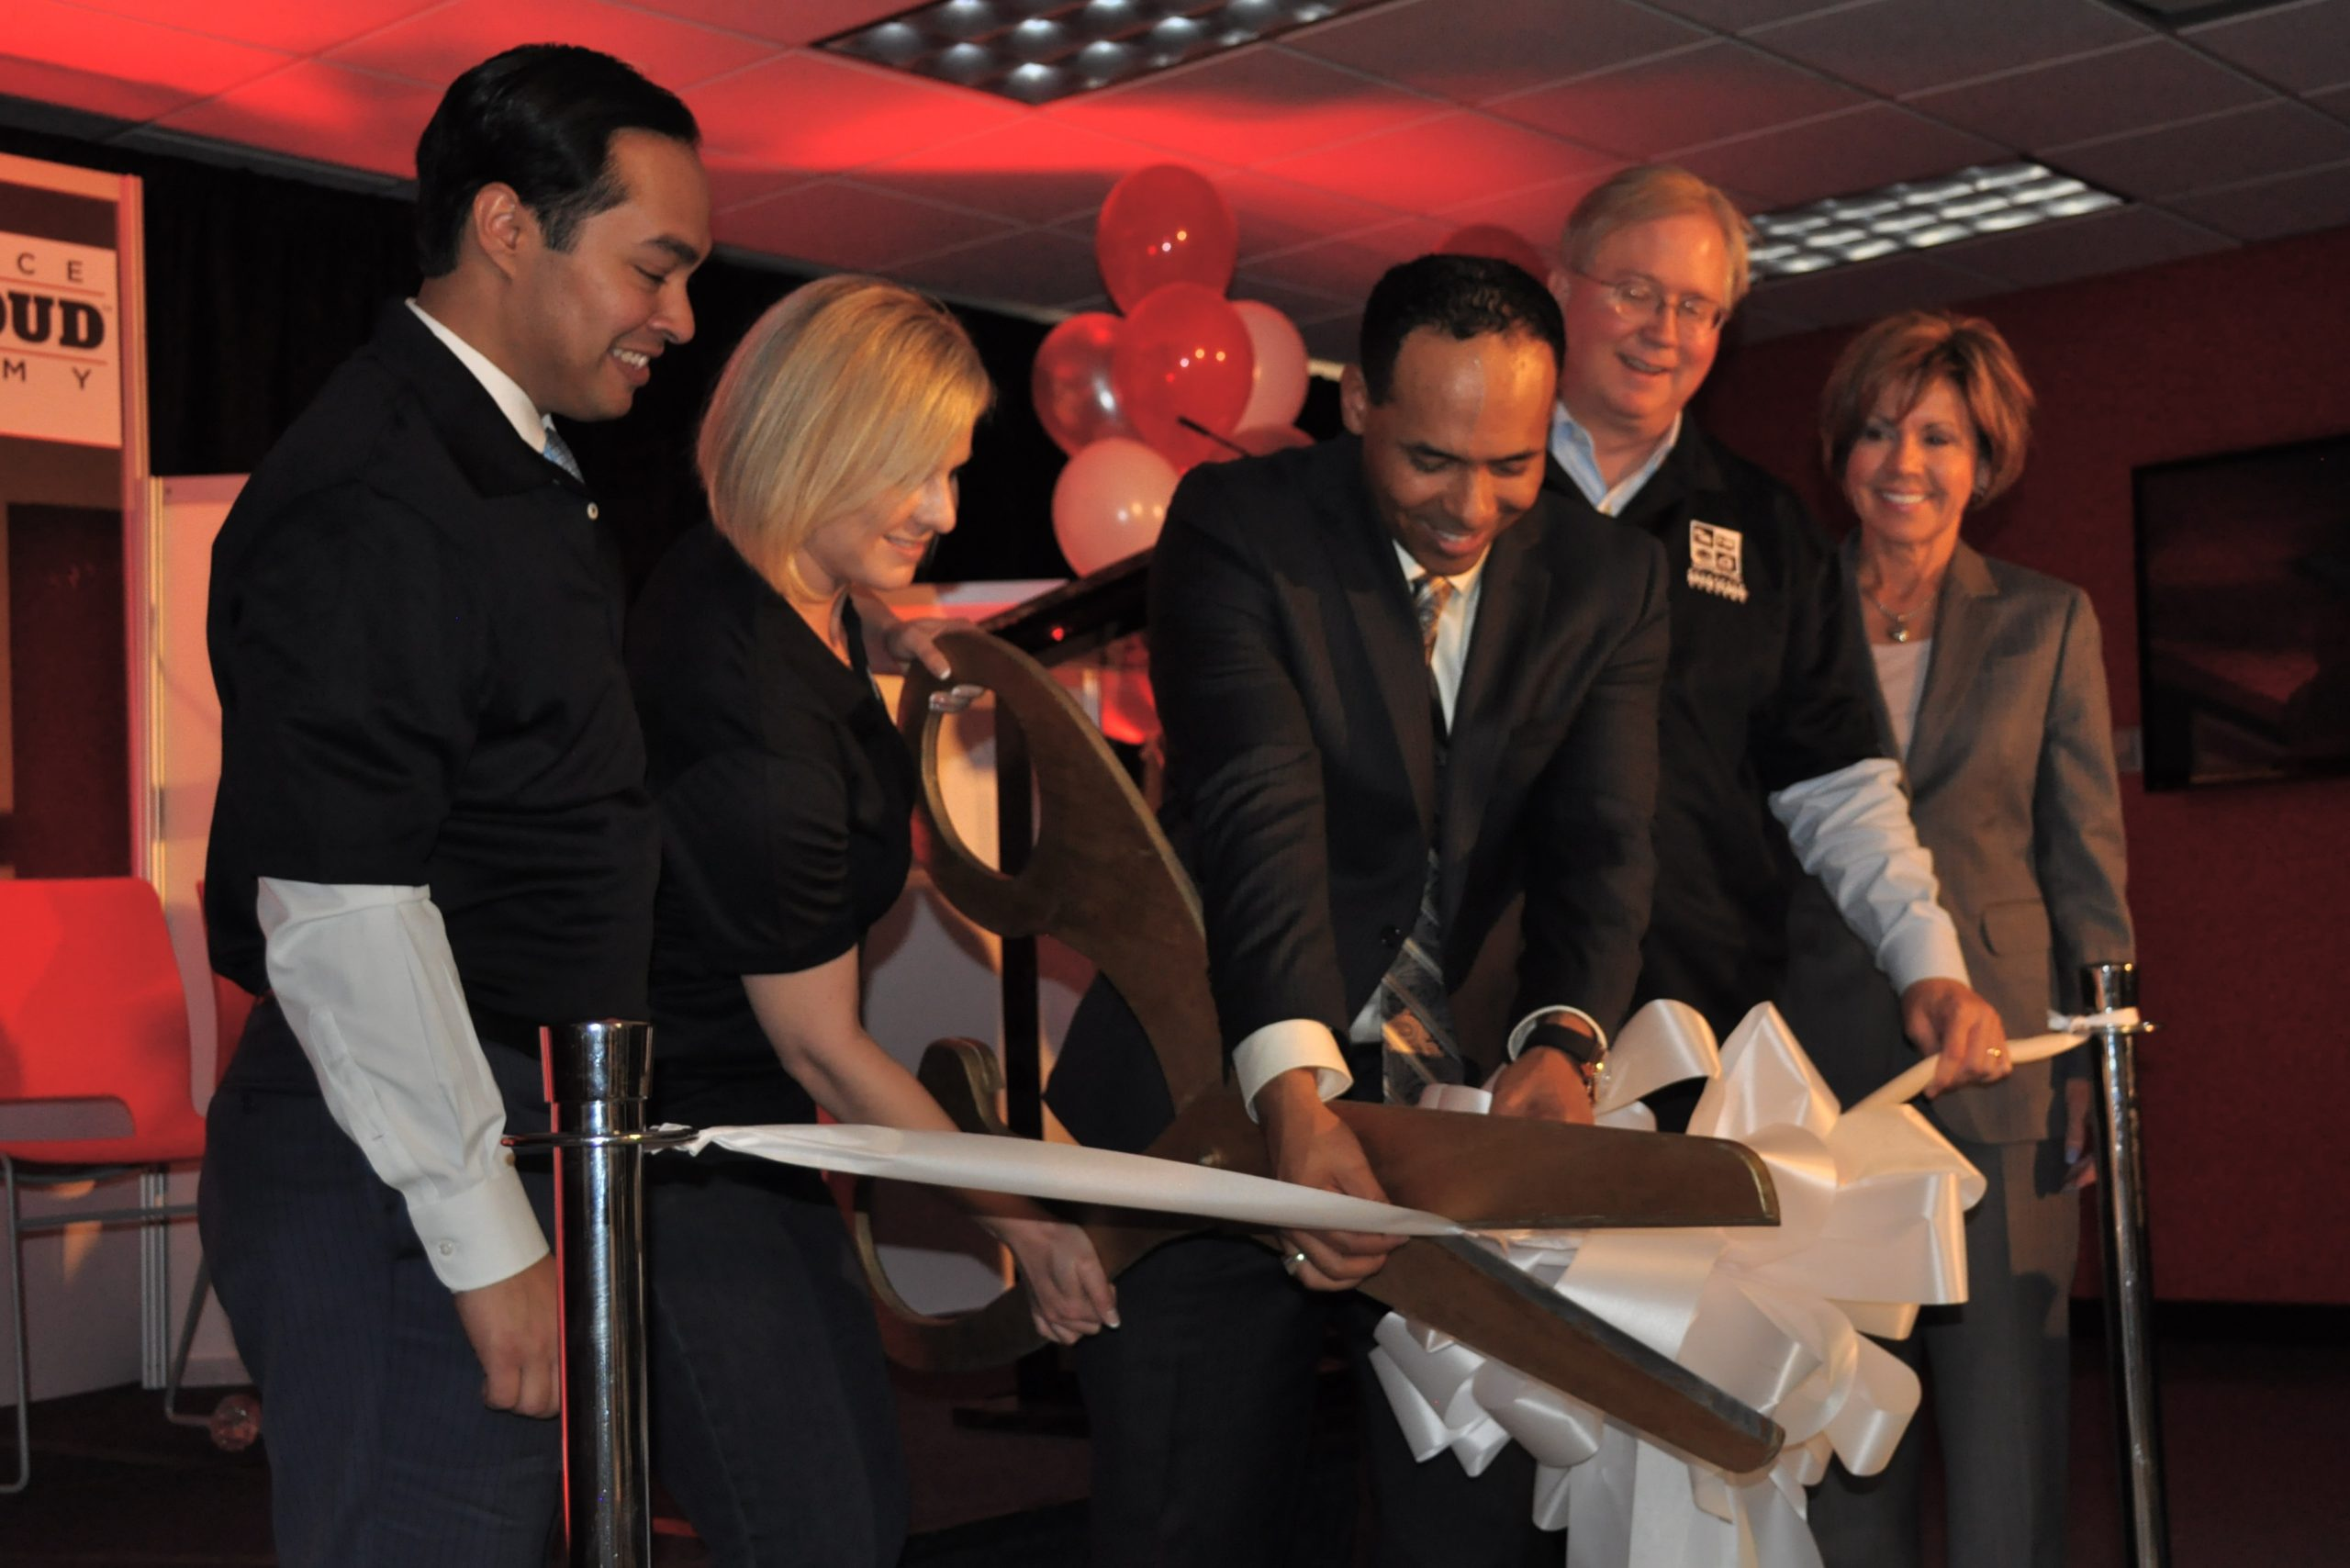 From Left: MayorJulián Castro, Open Cloud Academy Project Manager Debra Carter, Rackspace Learning and Development Director Duane La Bom, Rackspace Co-founder and Chairman Graham Weston, and City Manager Sheryl Sculley share a laugh while struggling to cut the ribbon, officially opening Rackspace's Open Cloud Academy at the Weston Centre.